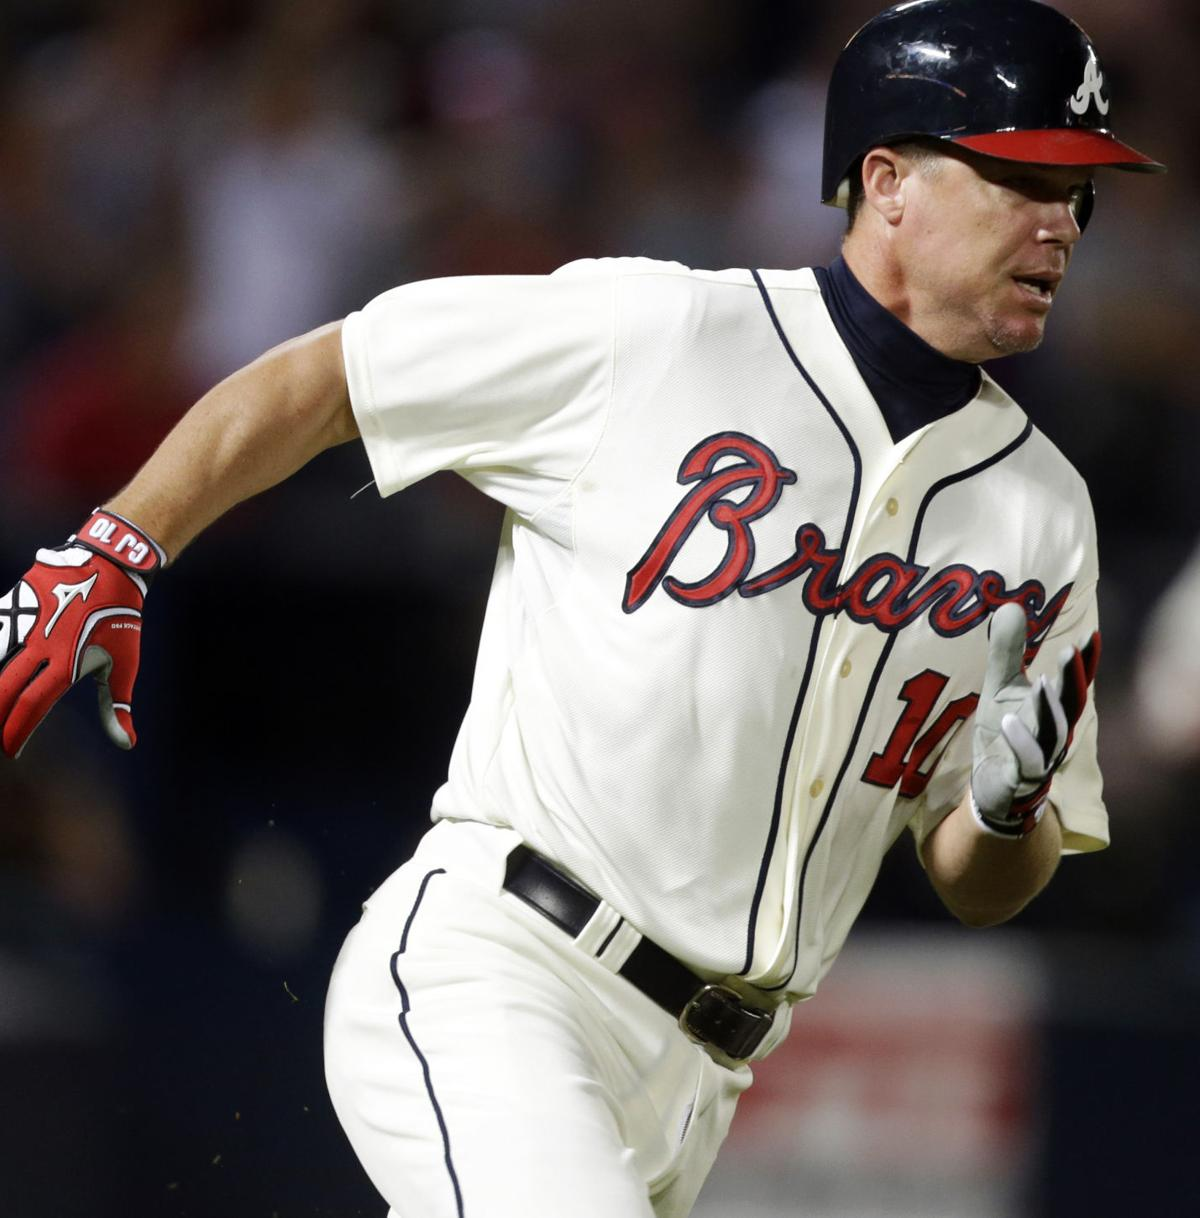 Wild Cards add intrigue to Baseball